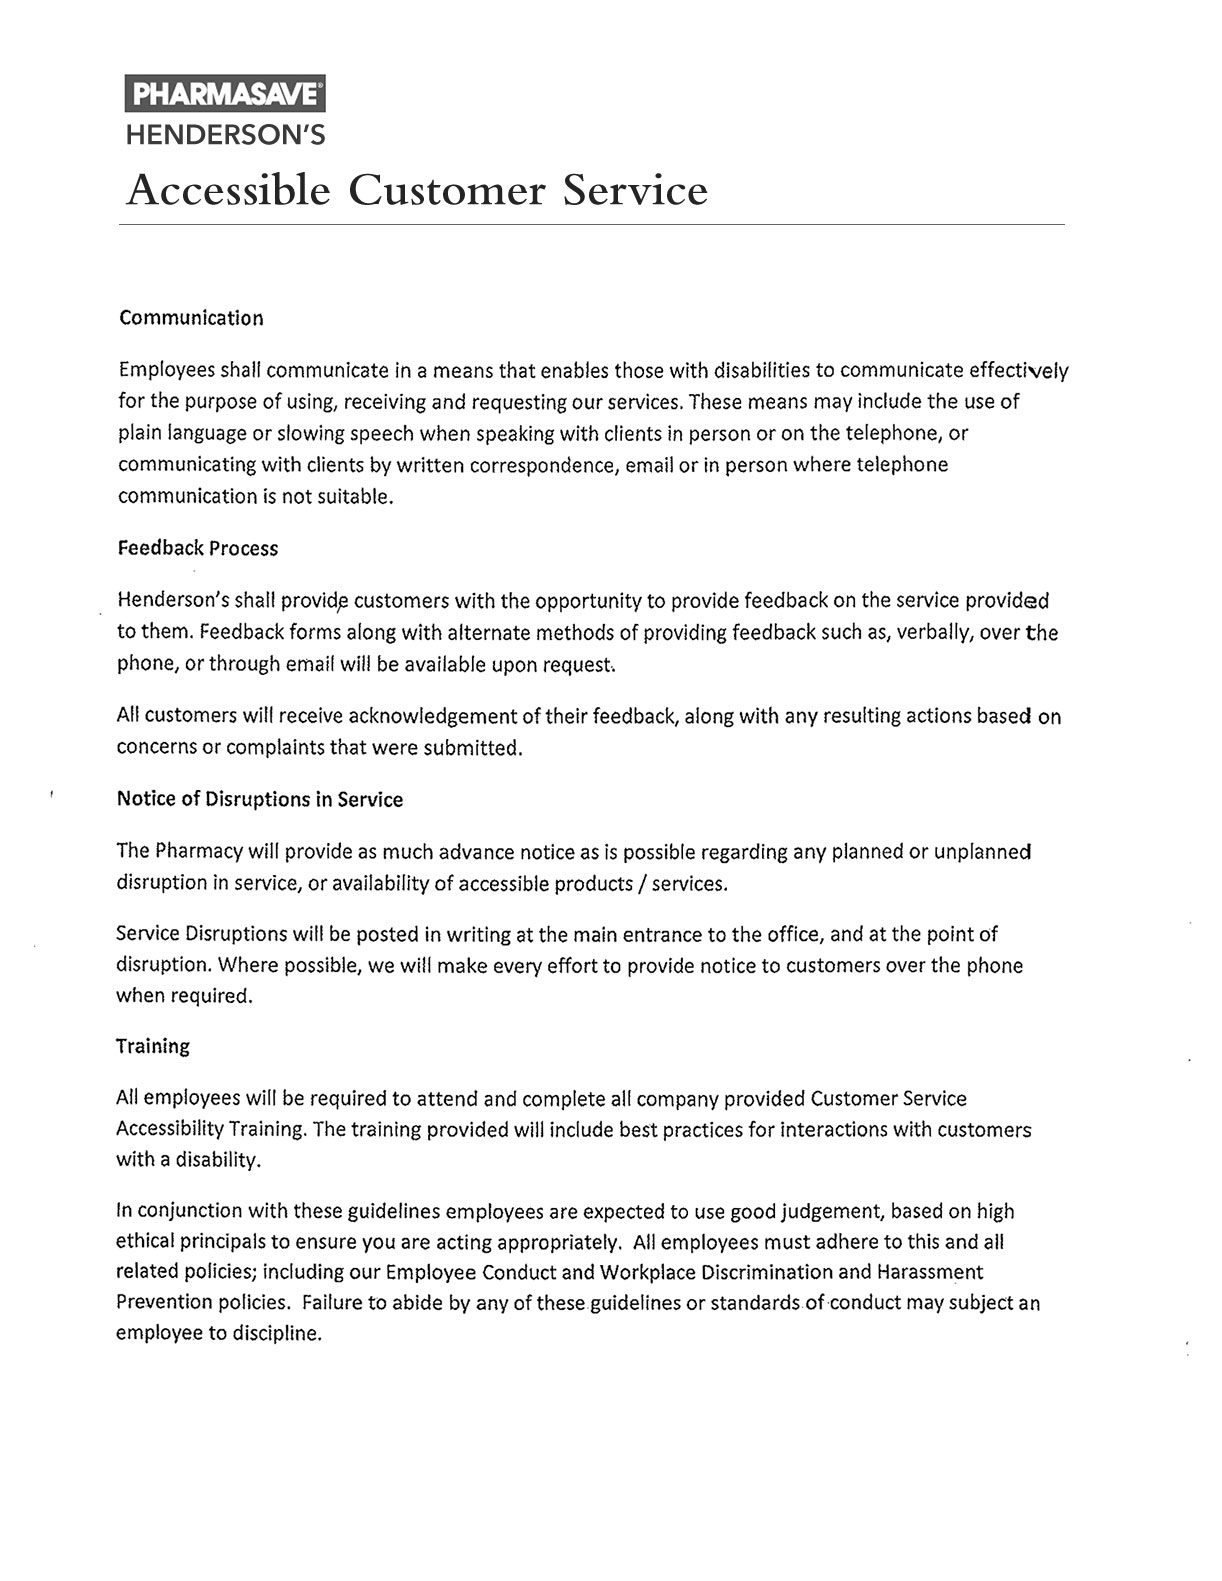 AODA Customer Service Policy Henderson Pharmacy